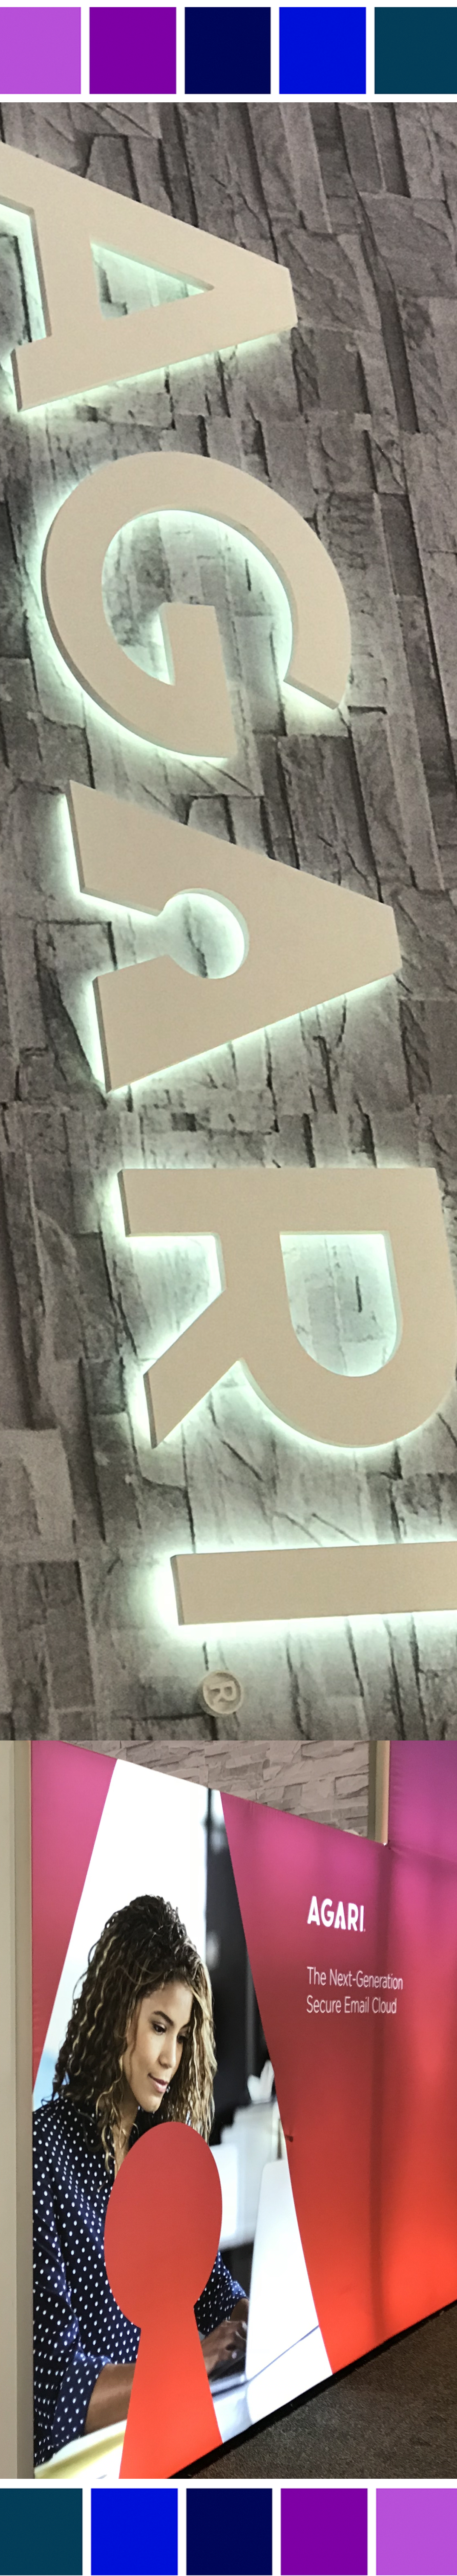 3D typography on a booth